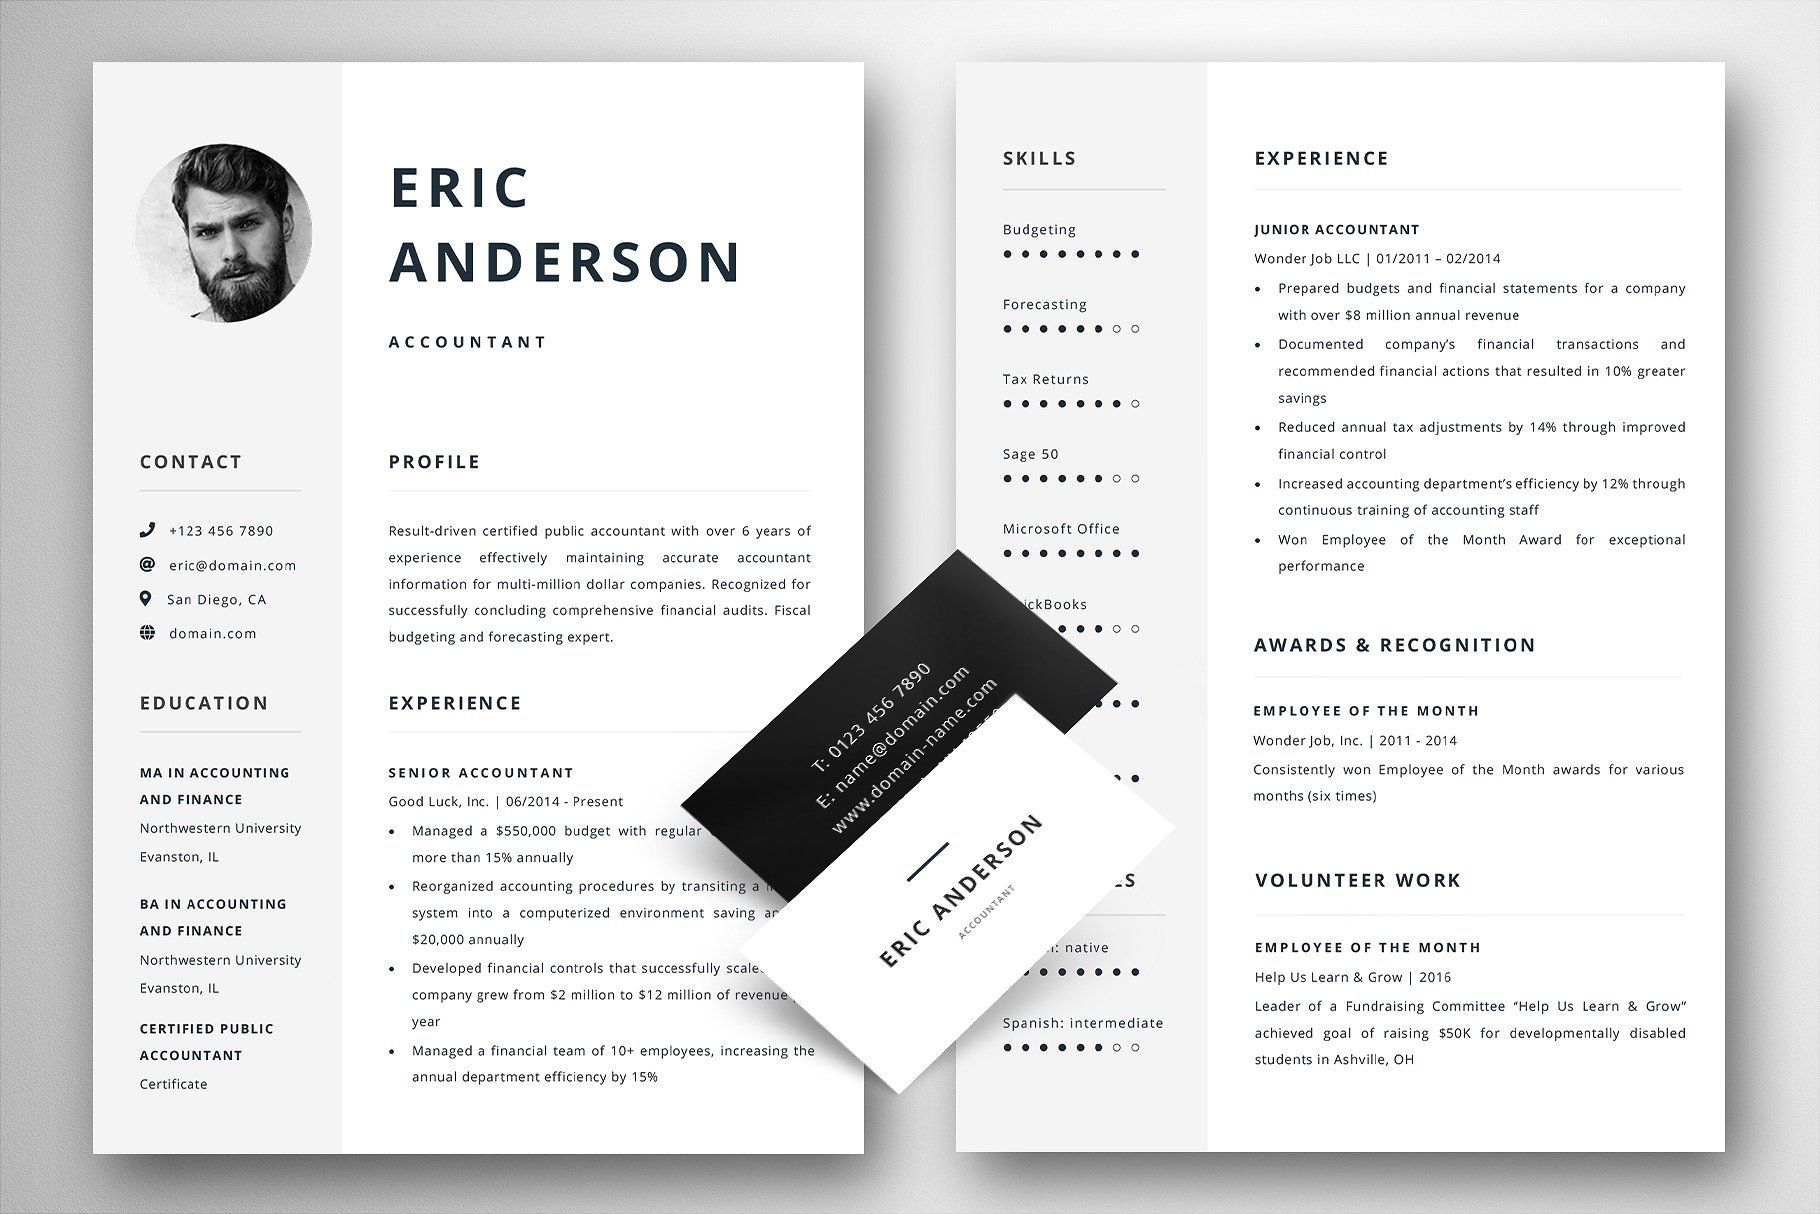 Accountant Resume / CV Cover Le... valuableaddultimate